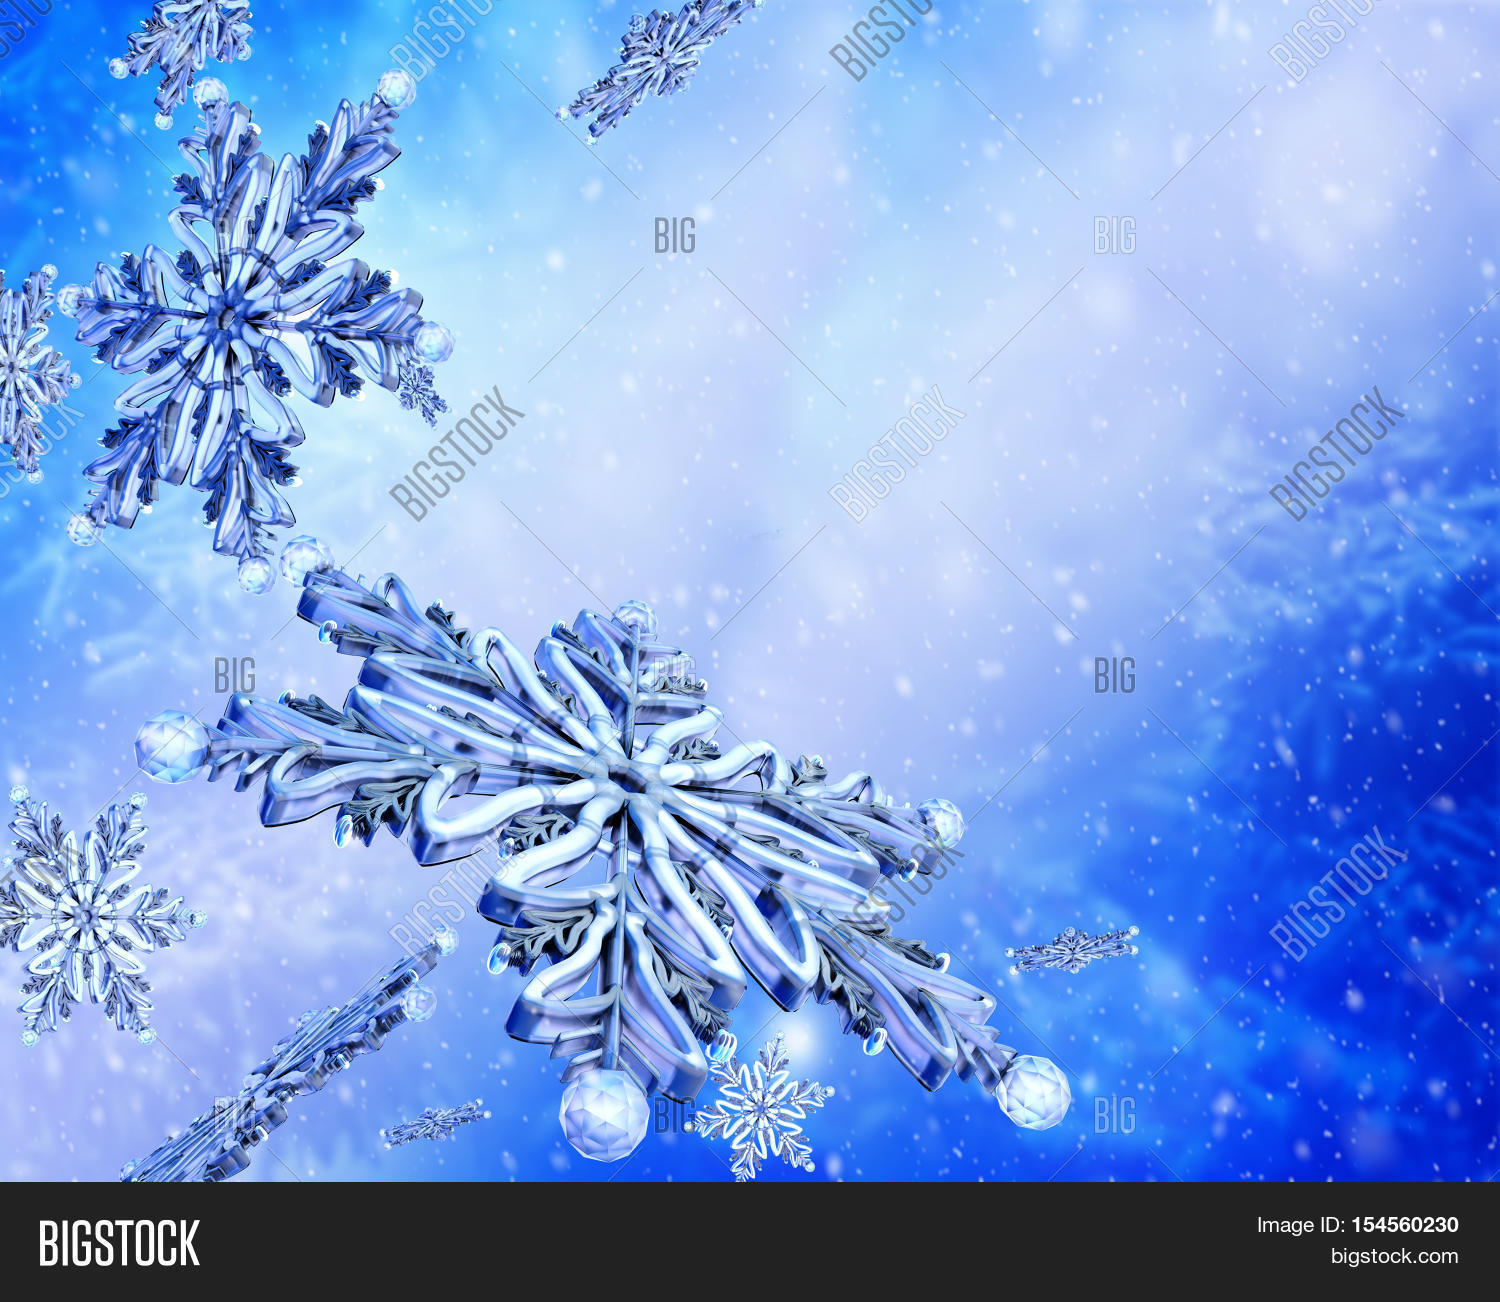 Flying Group Snowflake Image & Photo (Free Trial) | Bigstock